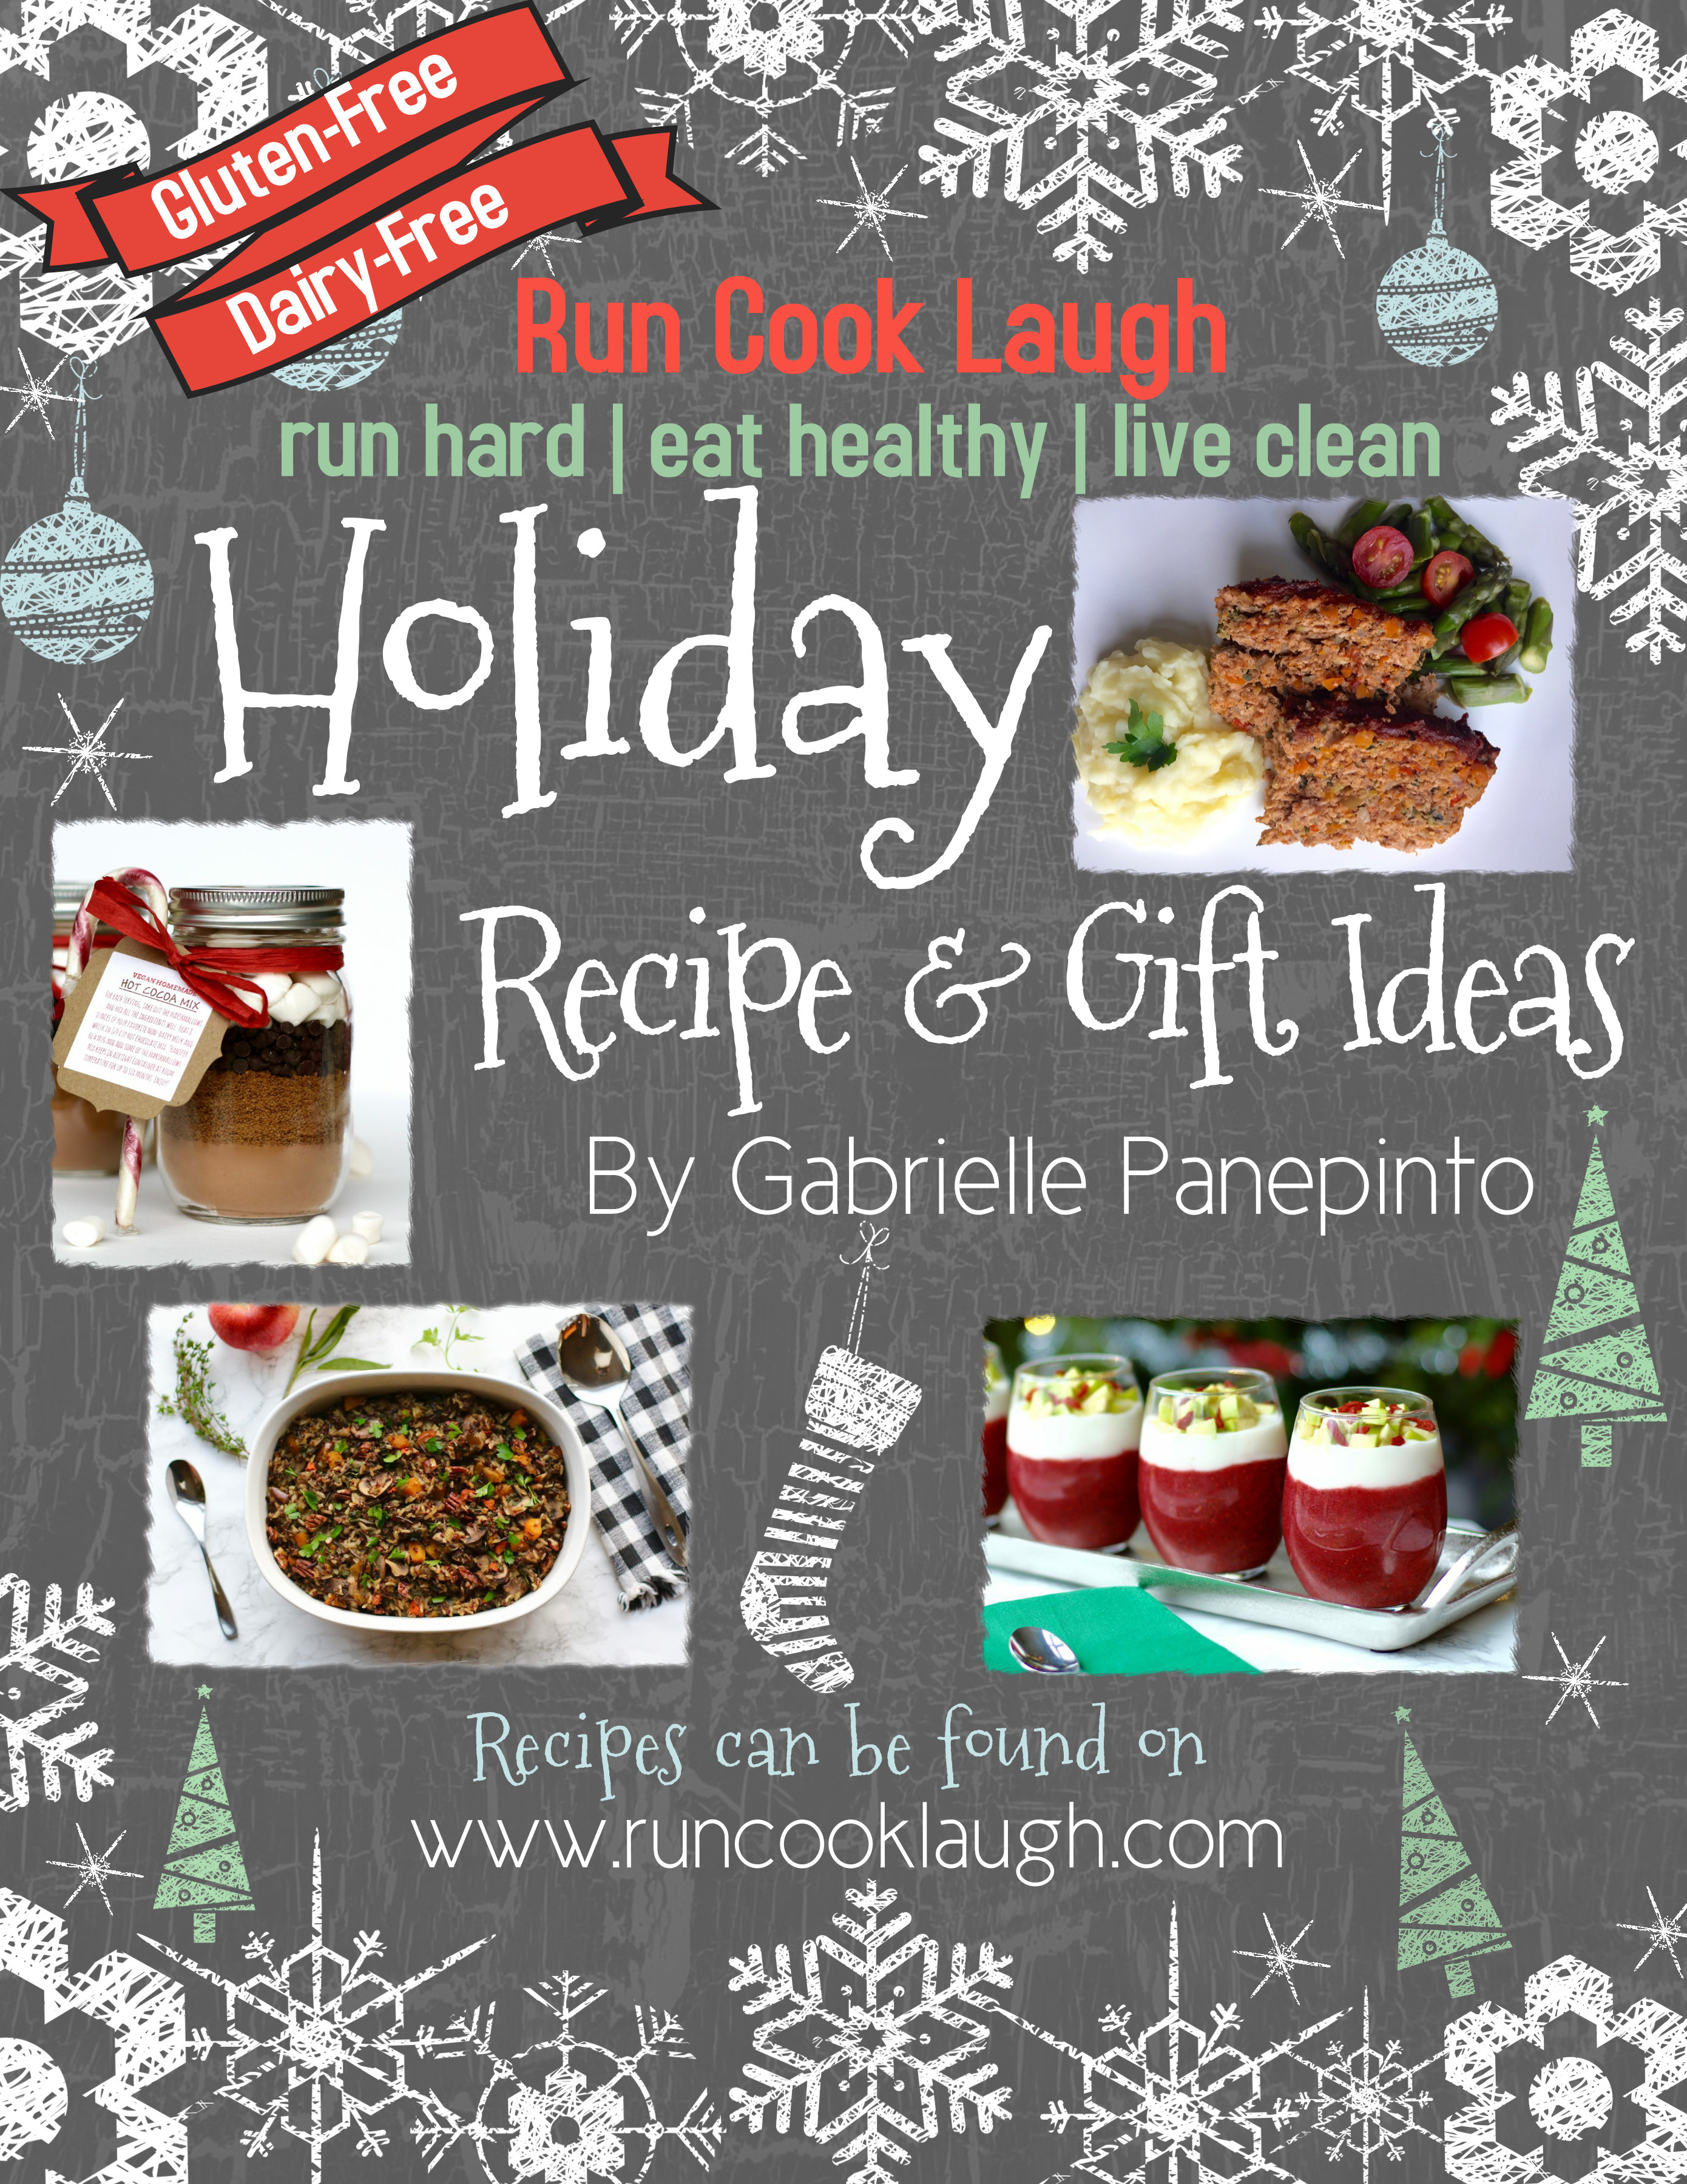 Best ideas about Gluten Free Gift Ideas . Save or Pin Holiday Recipe & Gift Ideas by Gabrielle Panepinto Gluten Now.